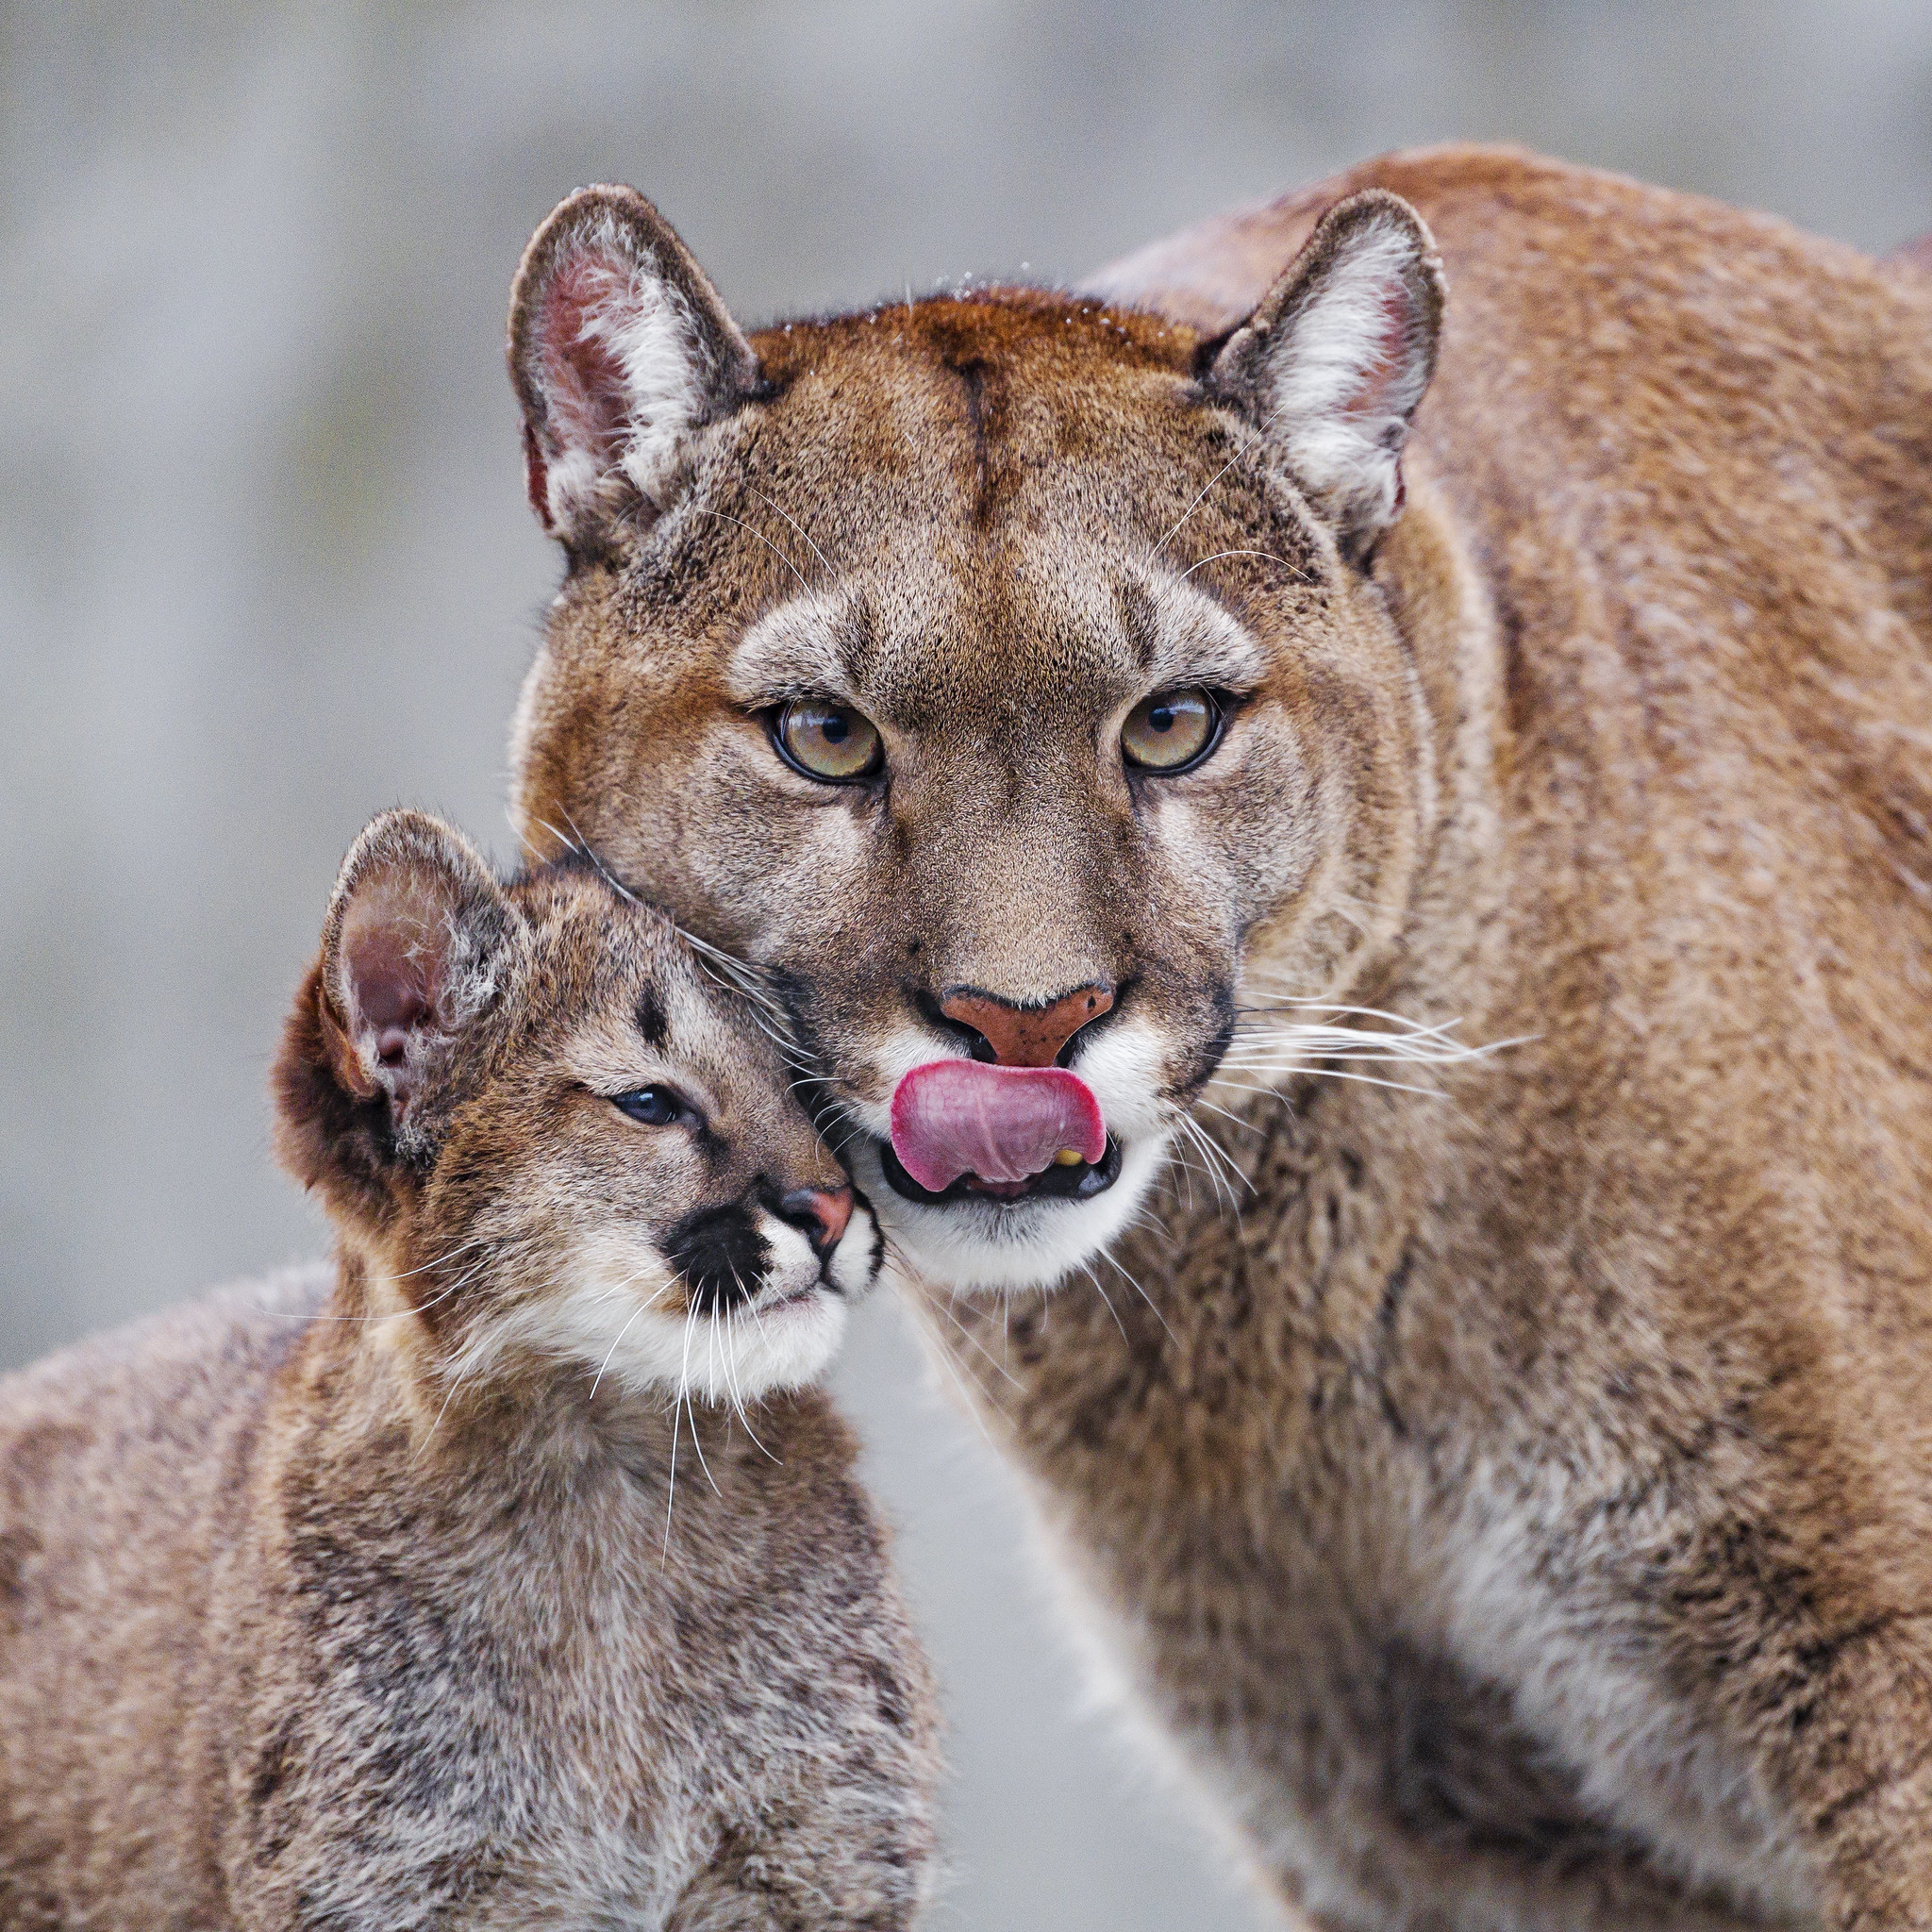 101581 download wallpaper Animals, Lioness, Predator, Young, Joey, Care screensavers and pictures for free